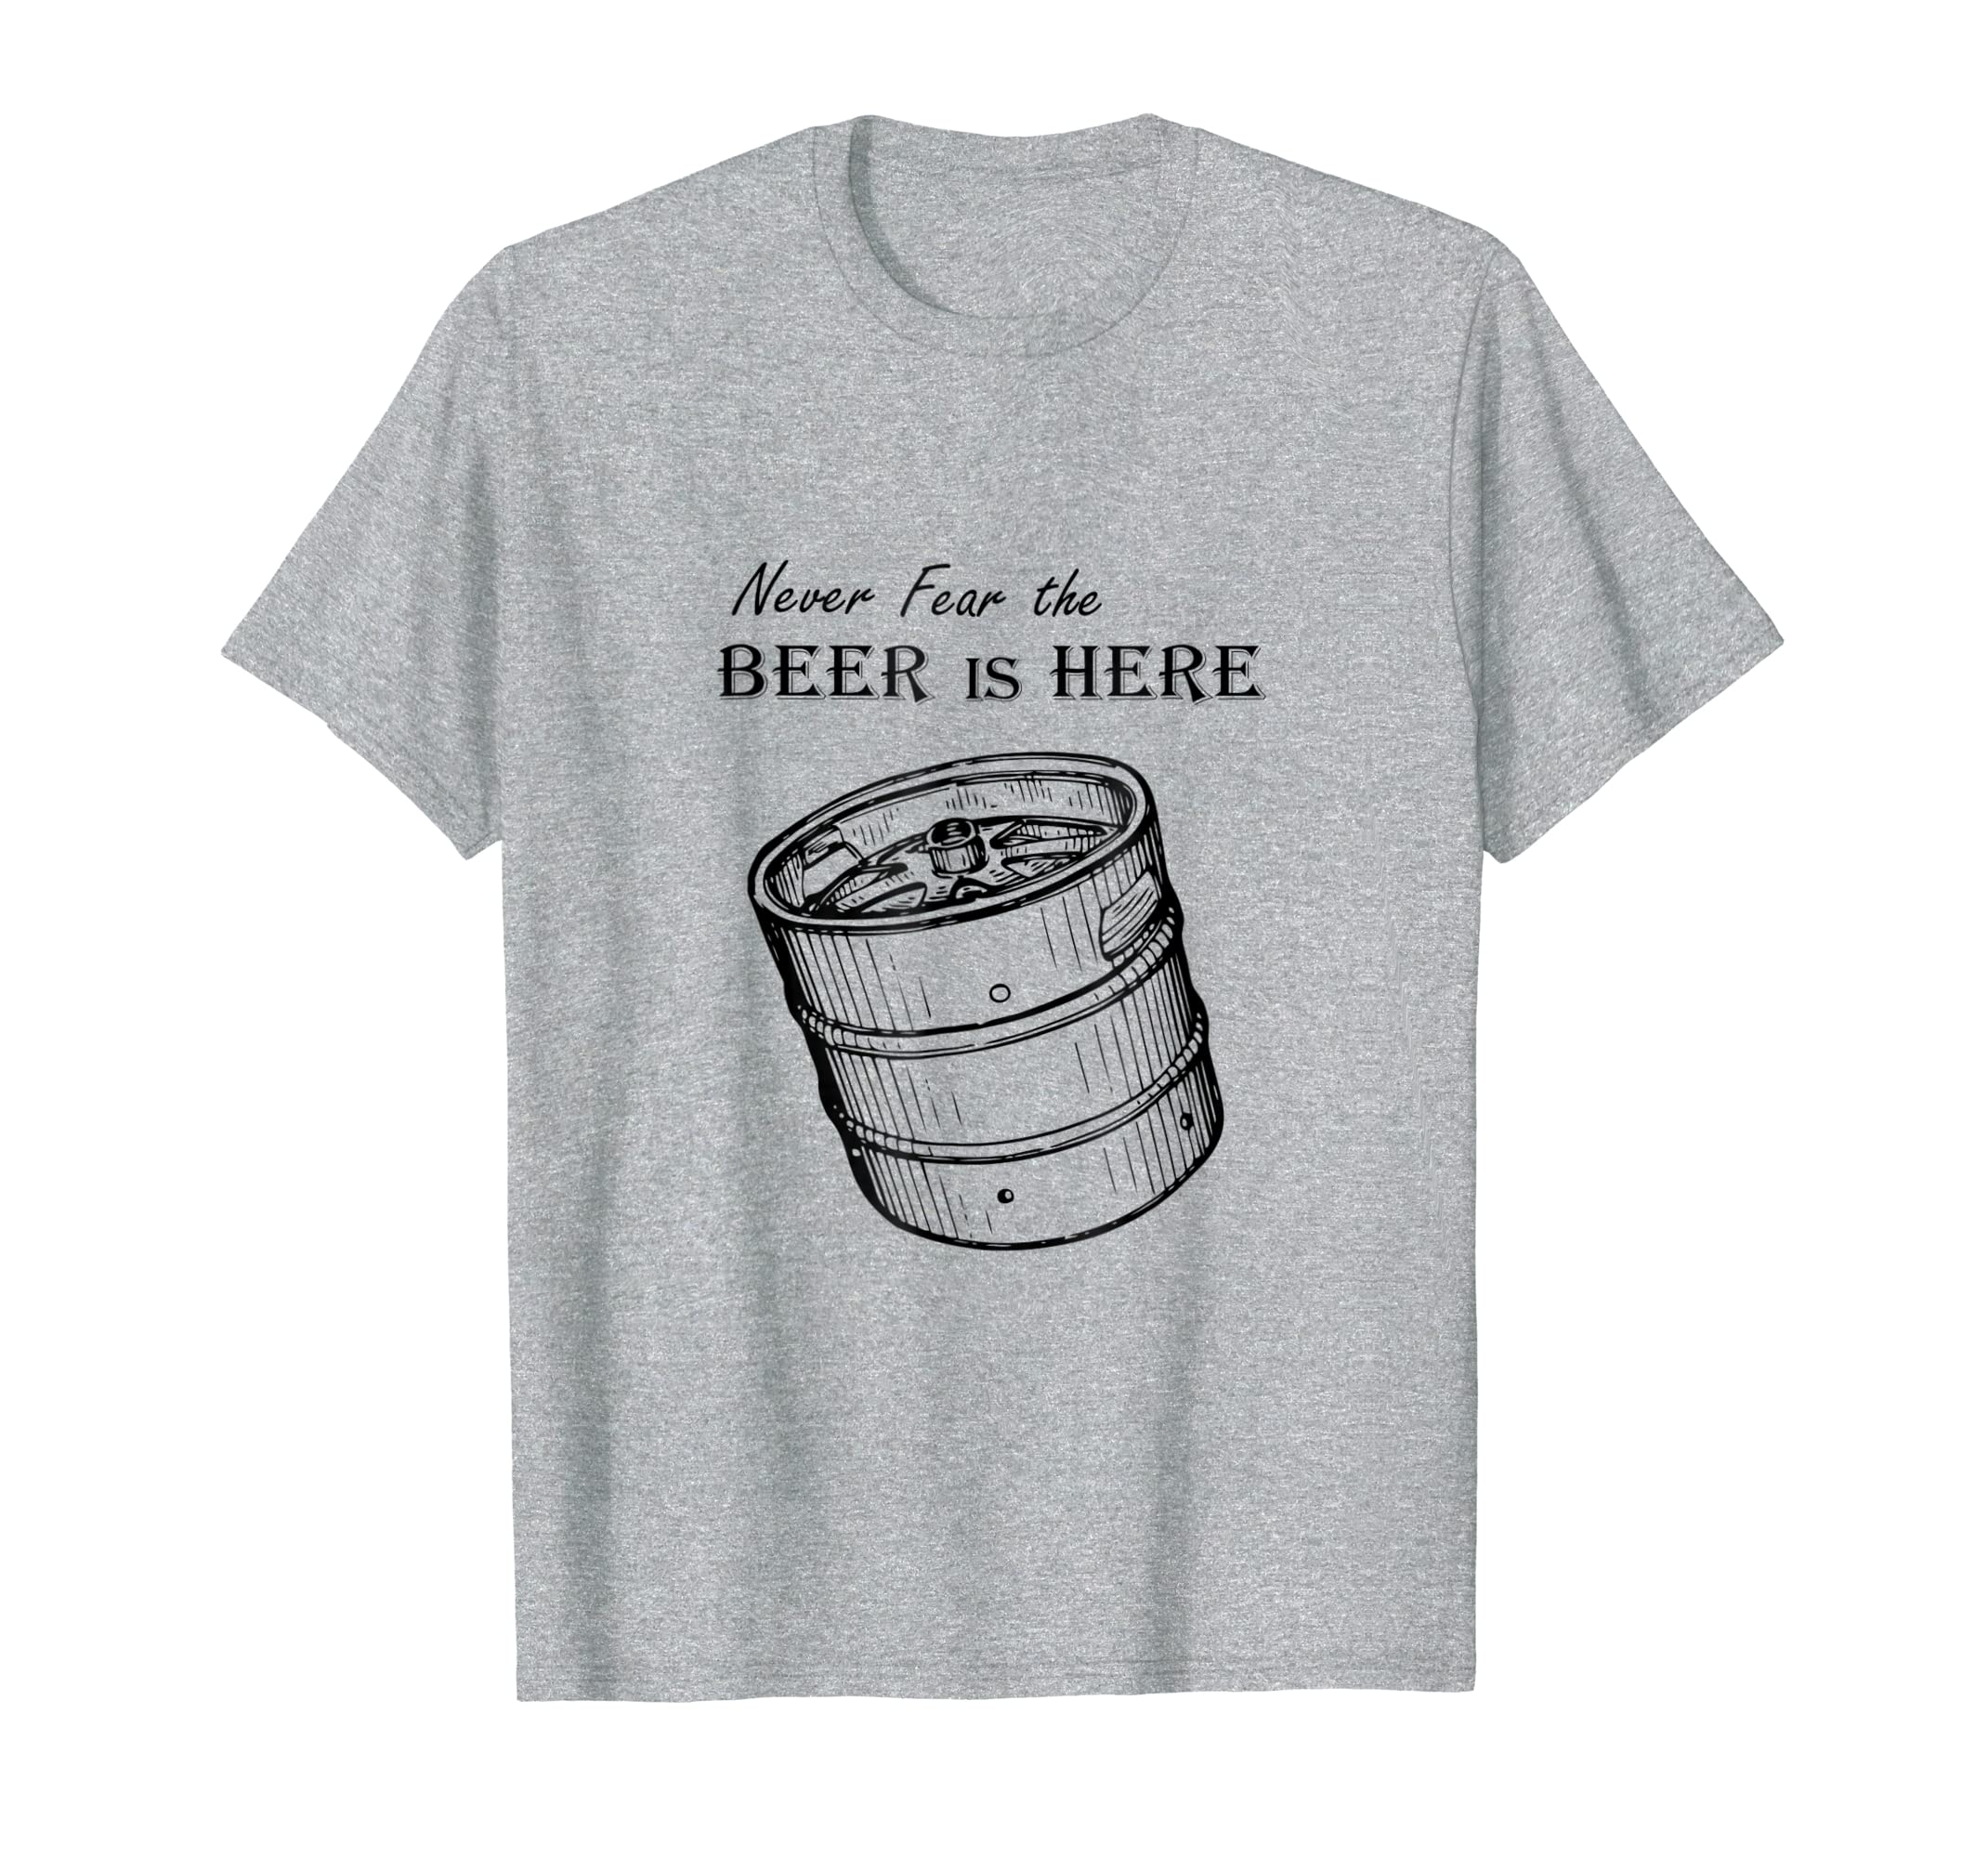 Amazon.com: Never Fear BEER is HERE - Novelty shirt funny Keg Dad Belly:  Clothing